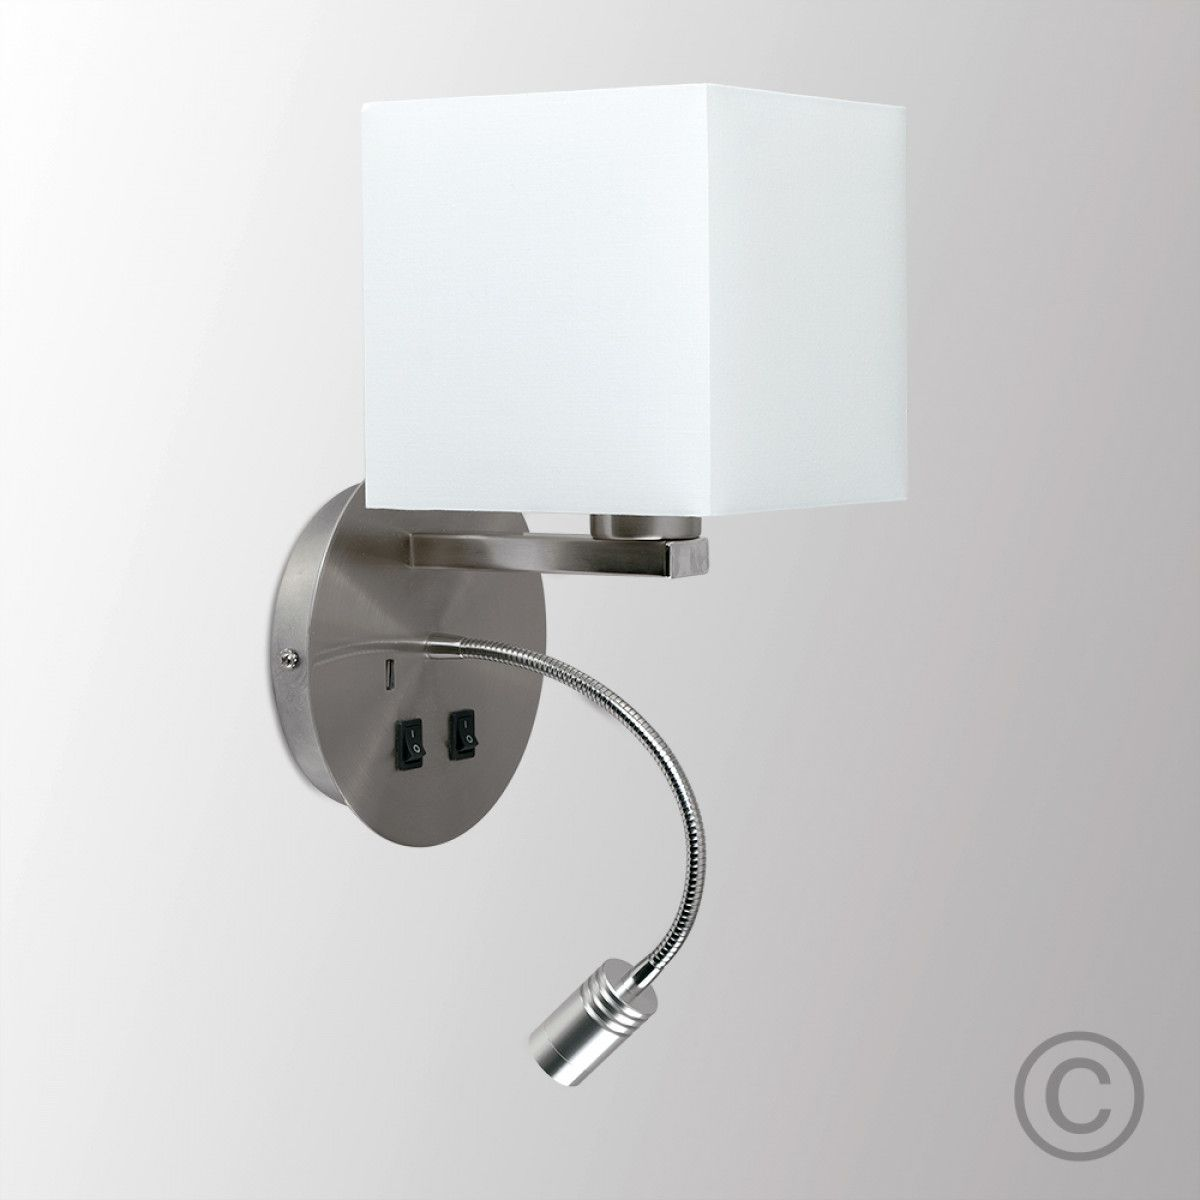 Modern Hotel Wall Light With Reading Light And Usb Charger In Brushed Chrome Finish Wall Lights Wall Mounted Reading Lights White Lamp Shade